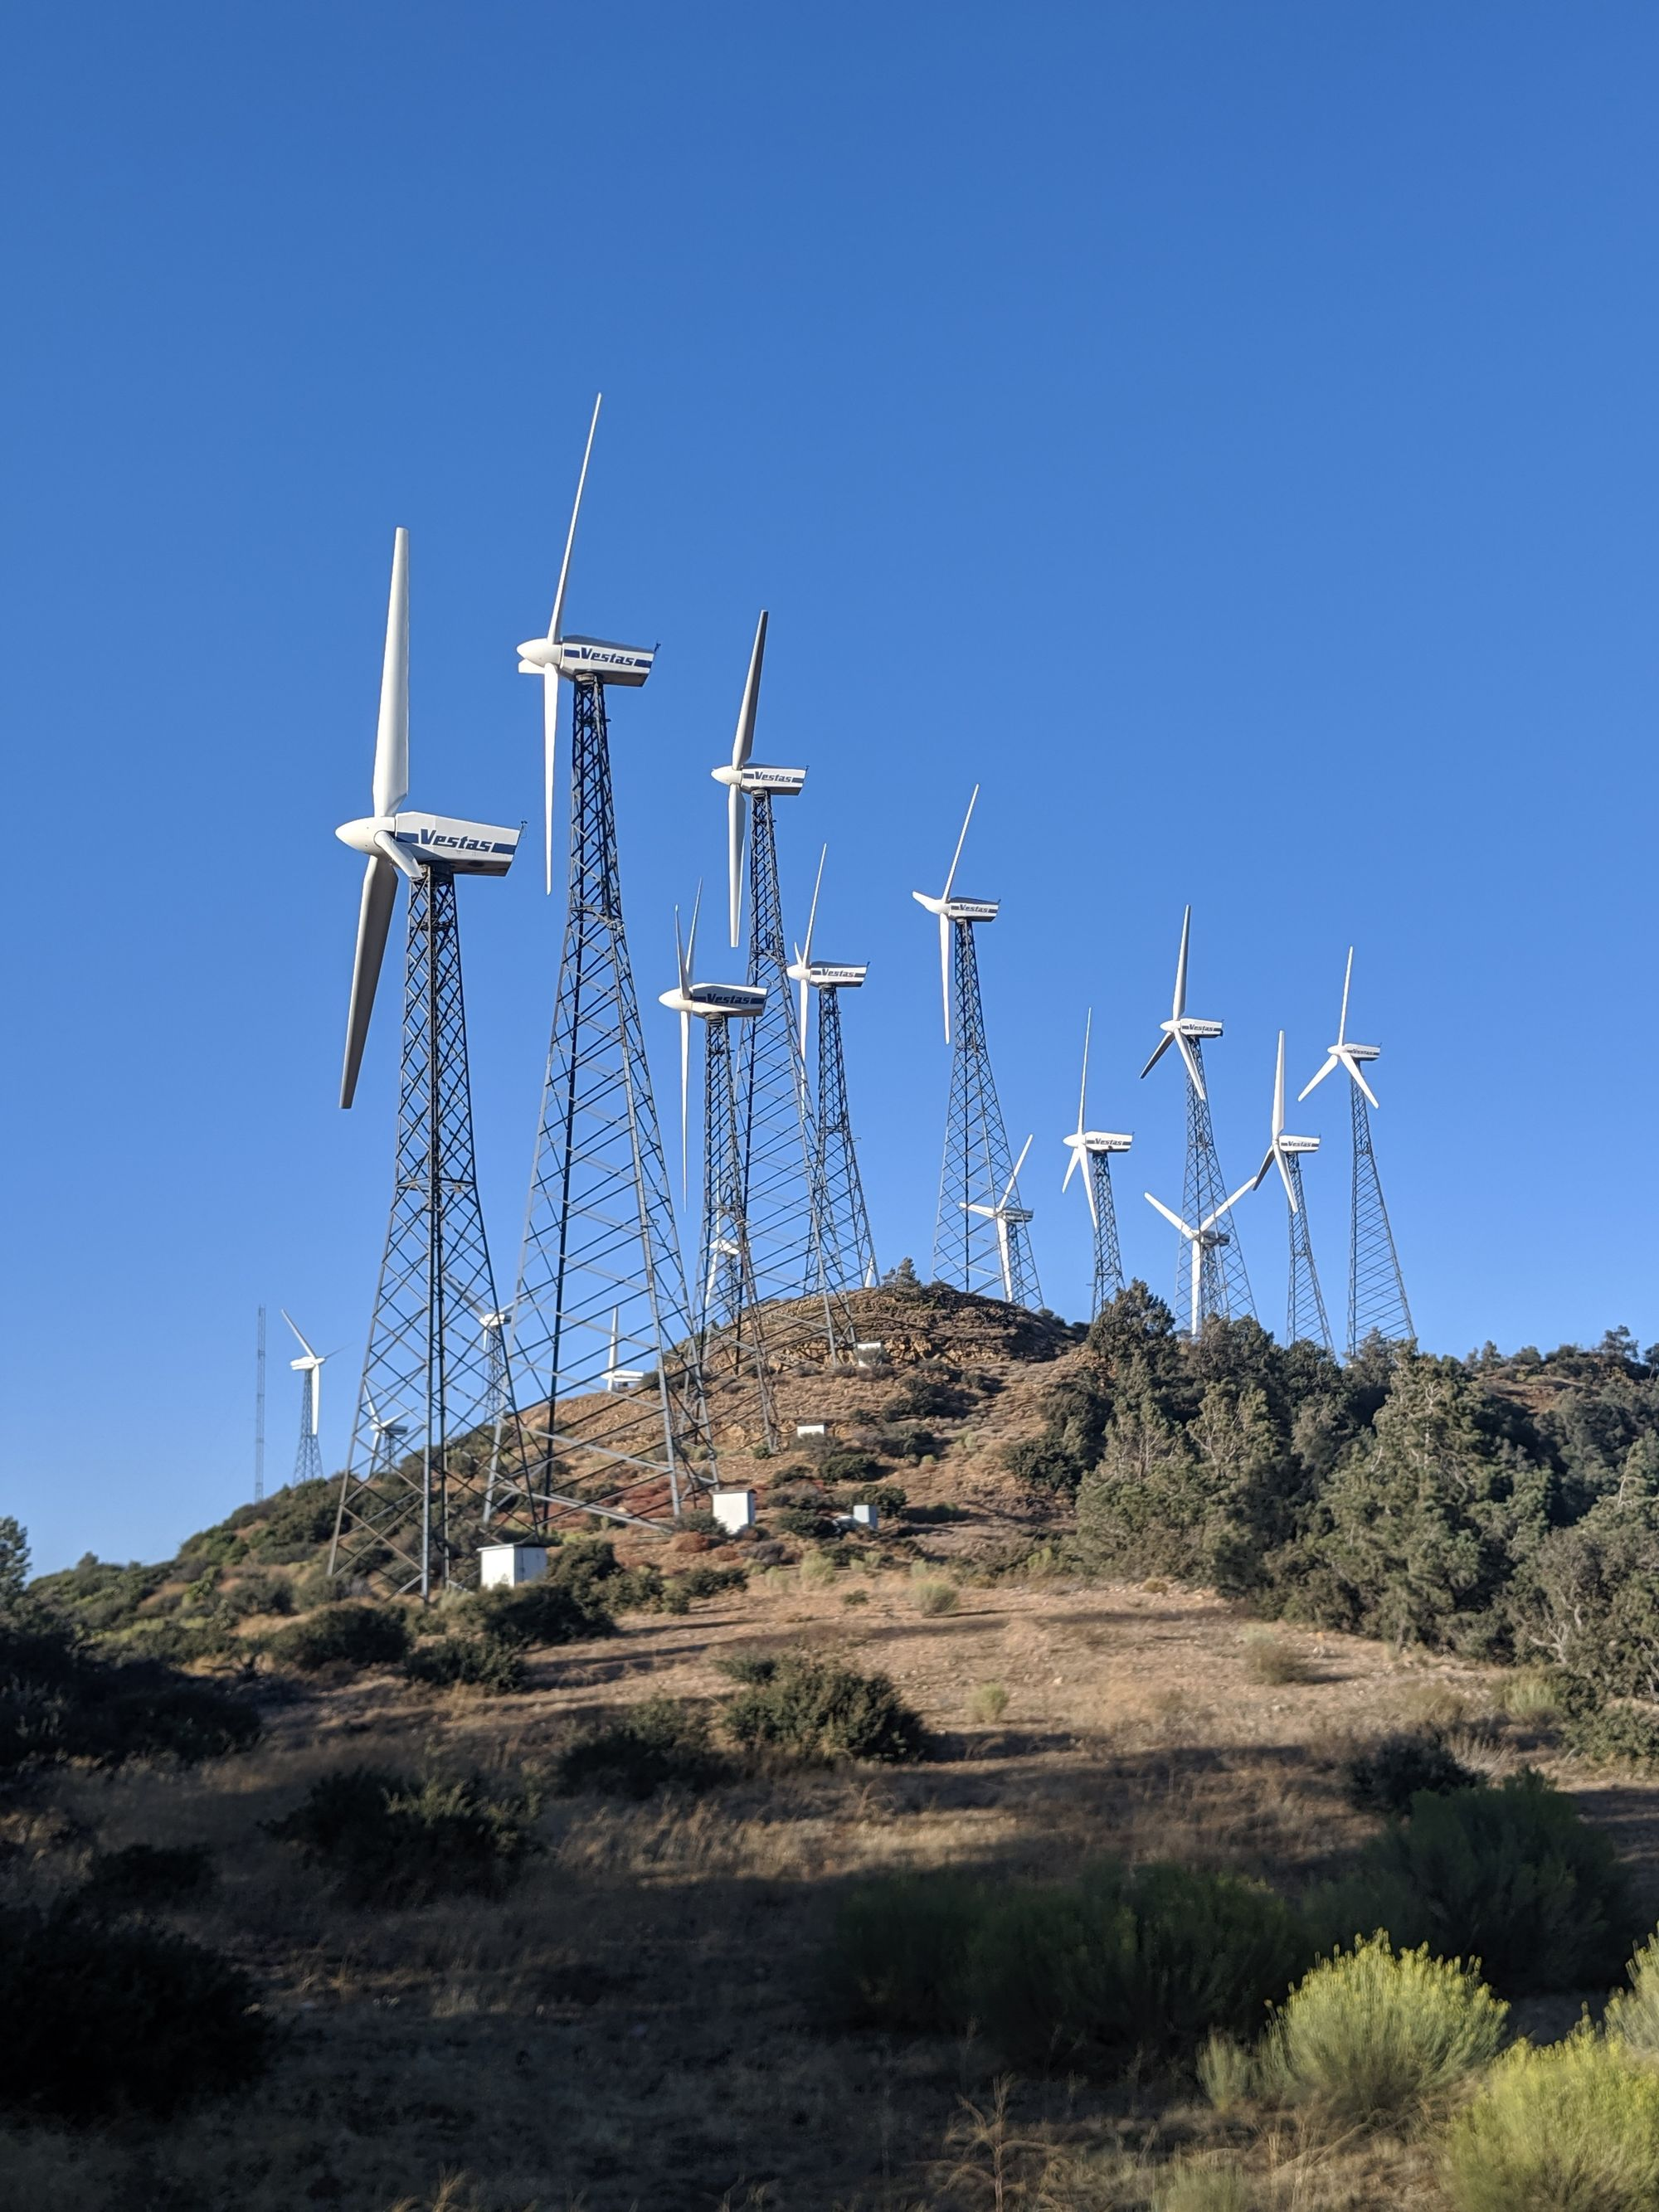 Tehachapi windfarms